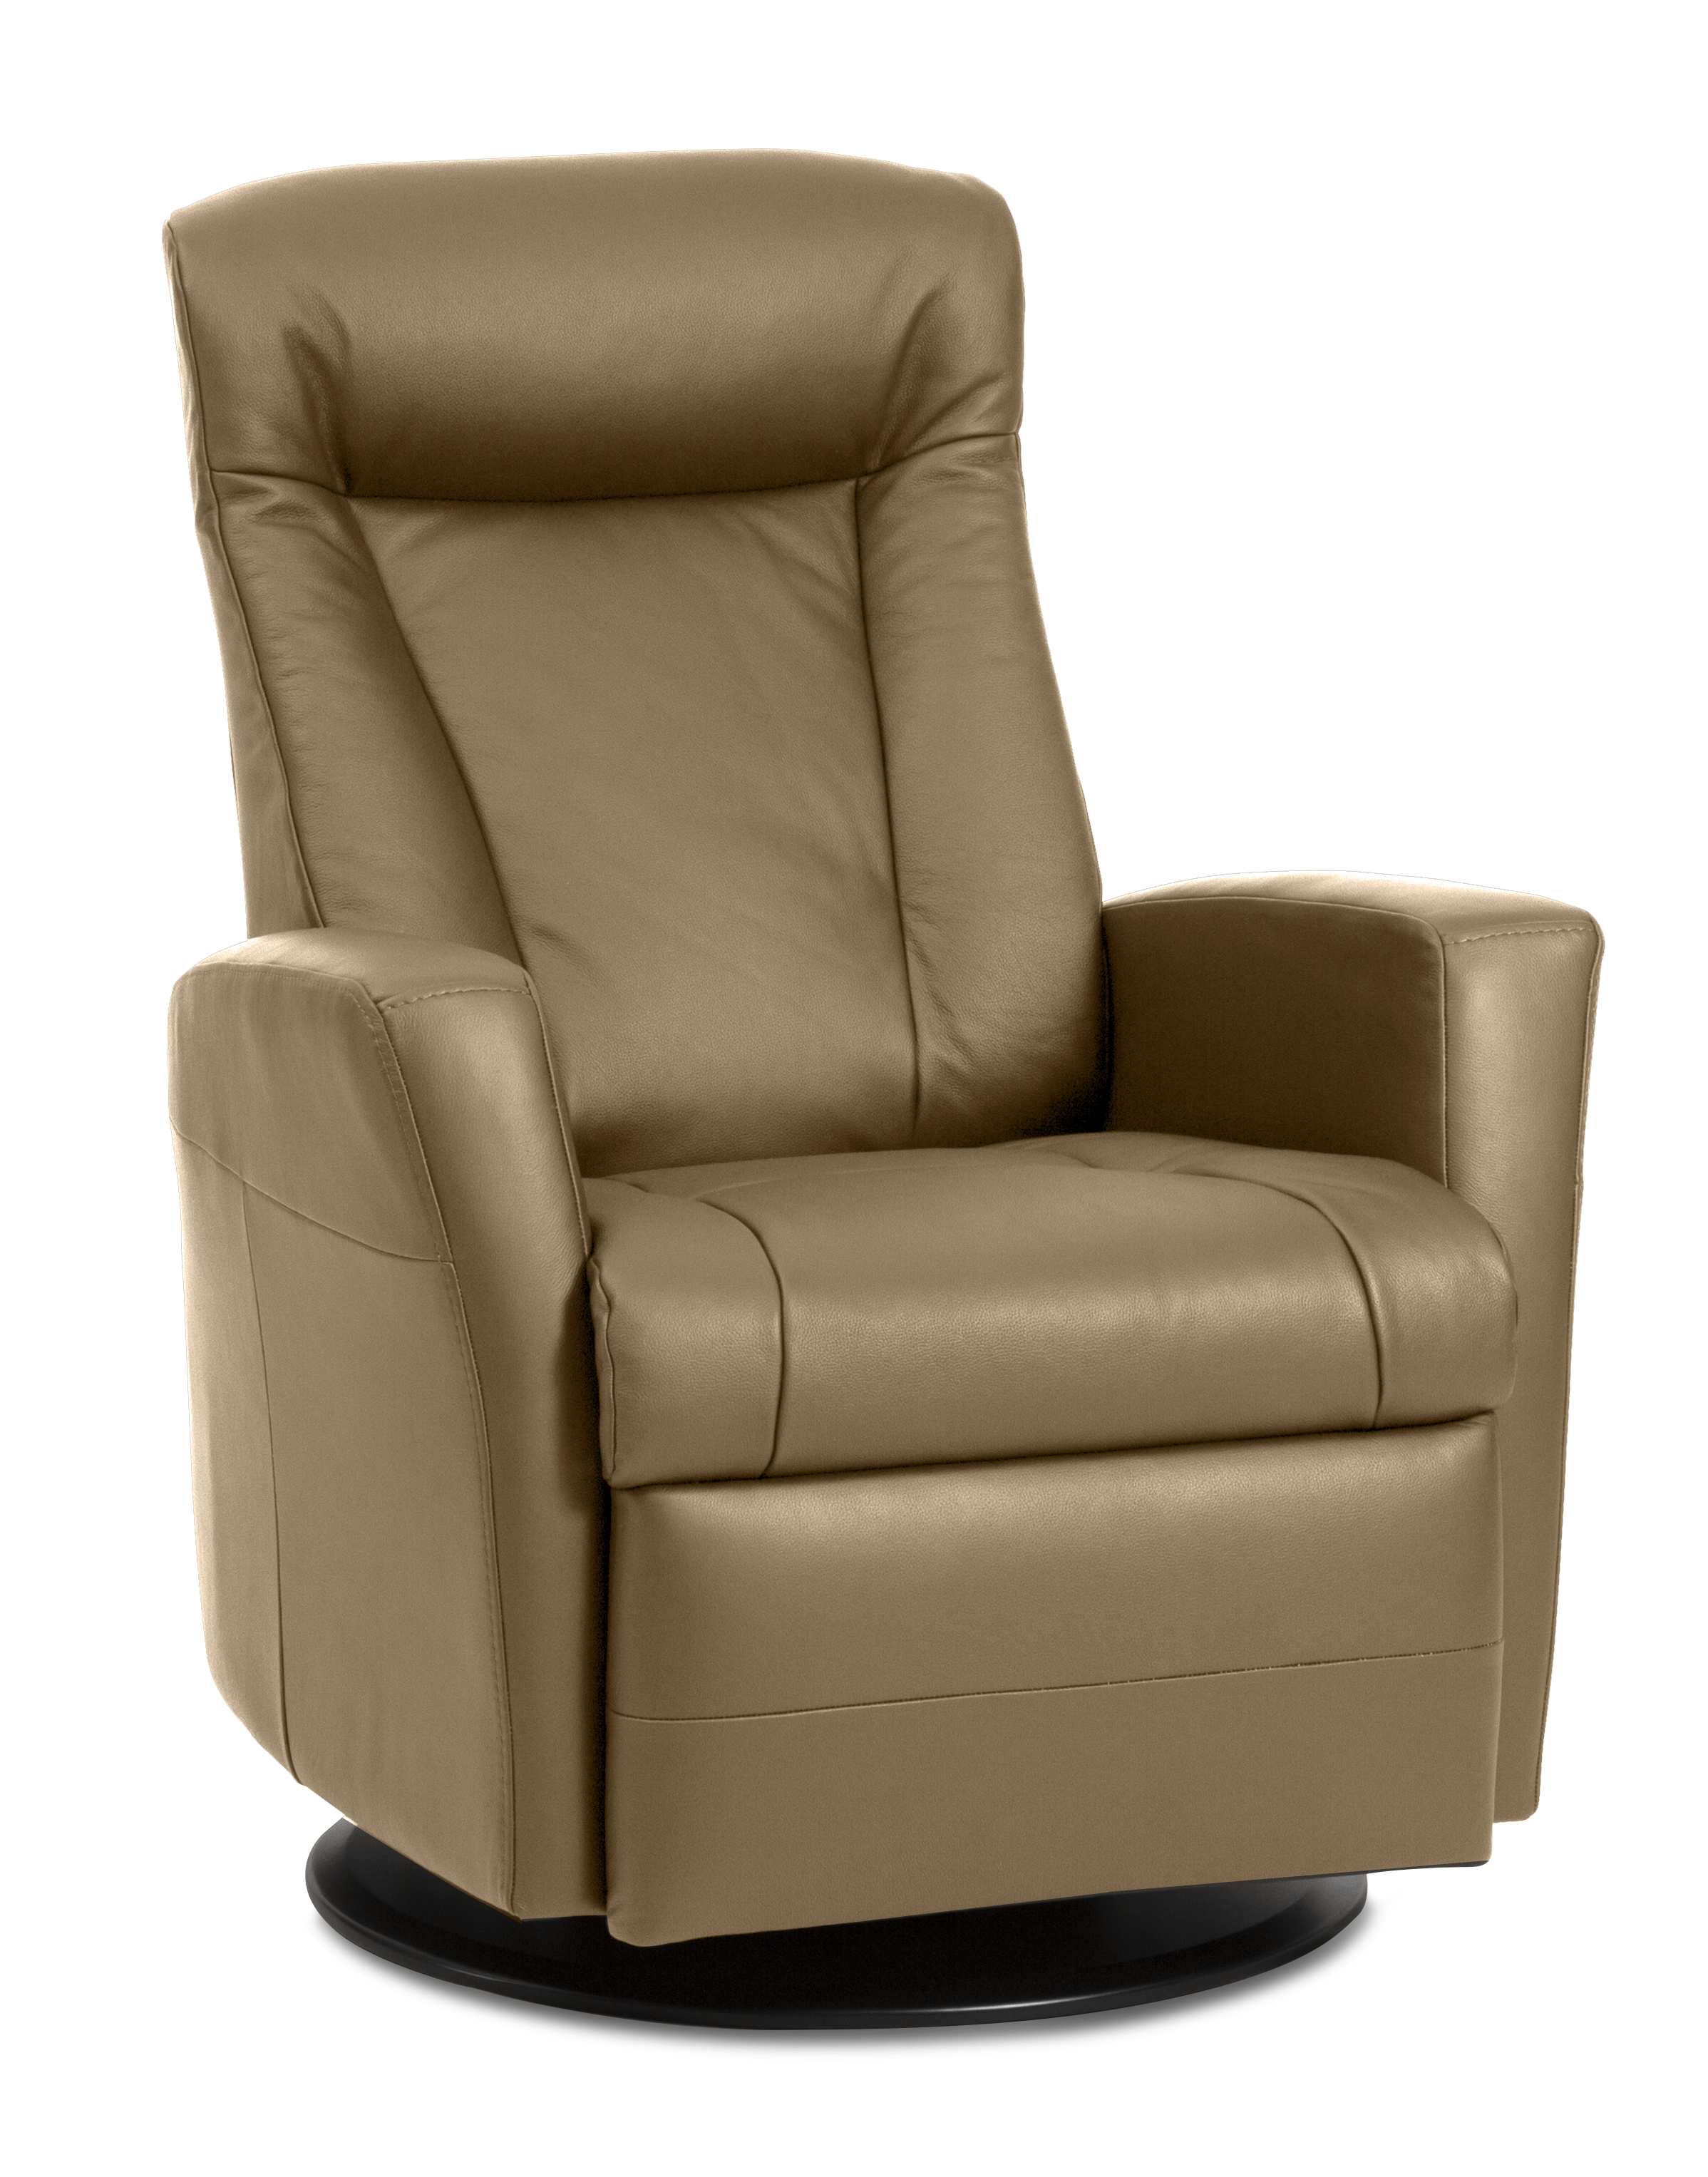 Comfort Recliner With Built In Chaise Compact Decorium